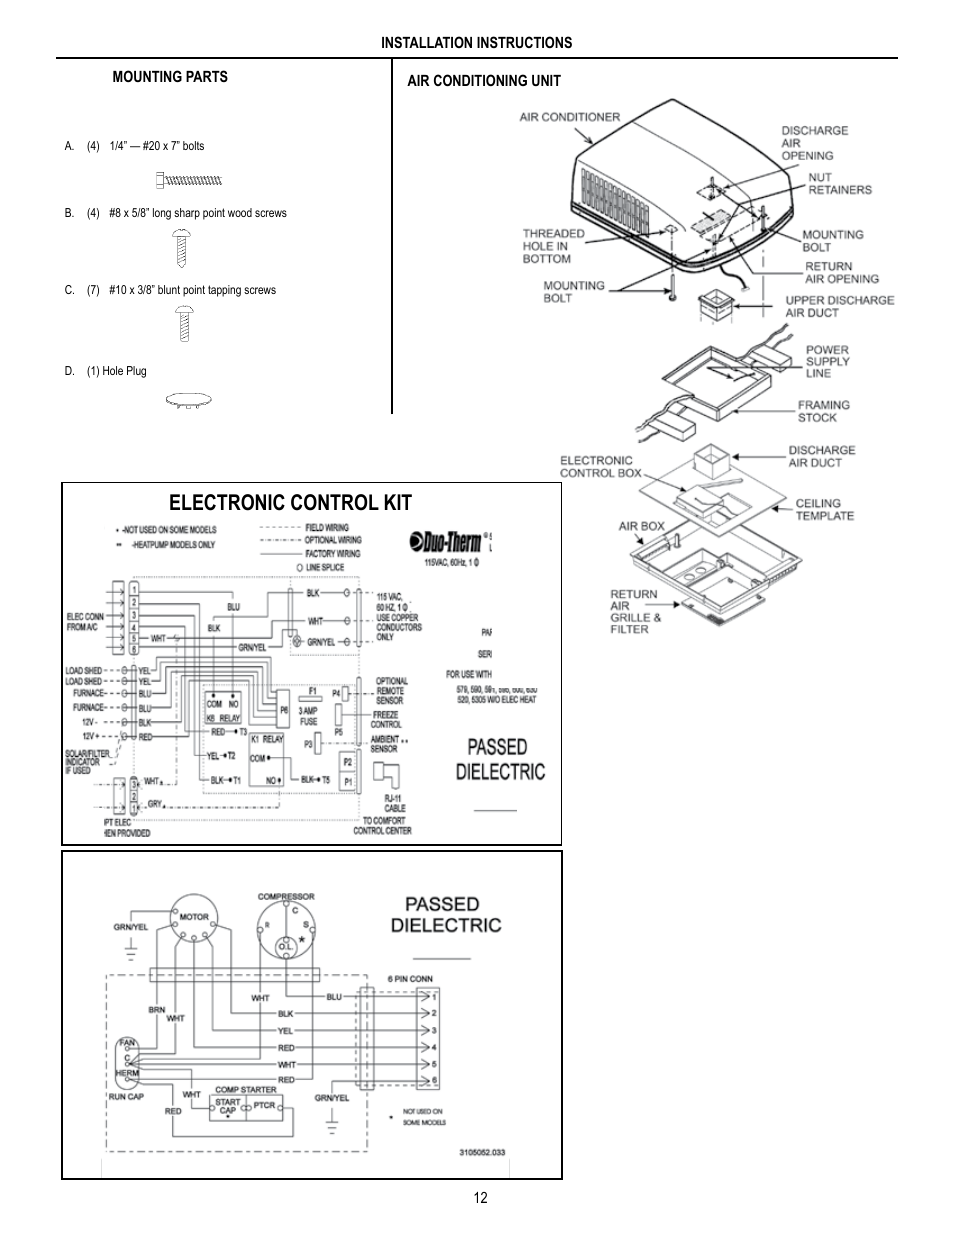 electronic control kit unit field wiring diagram